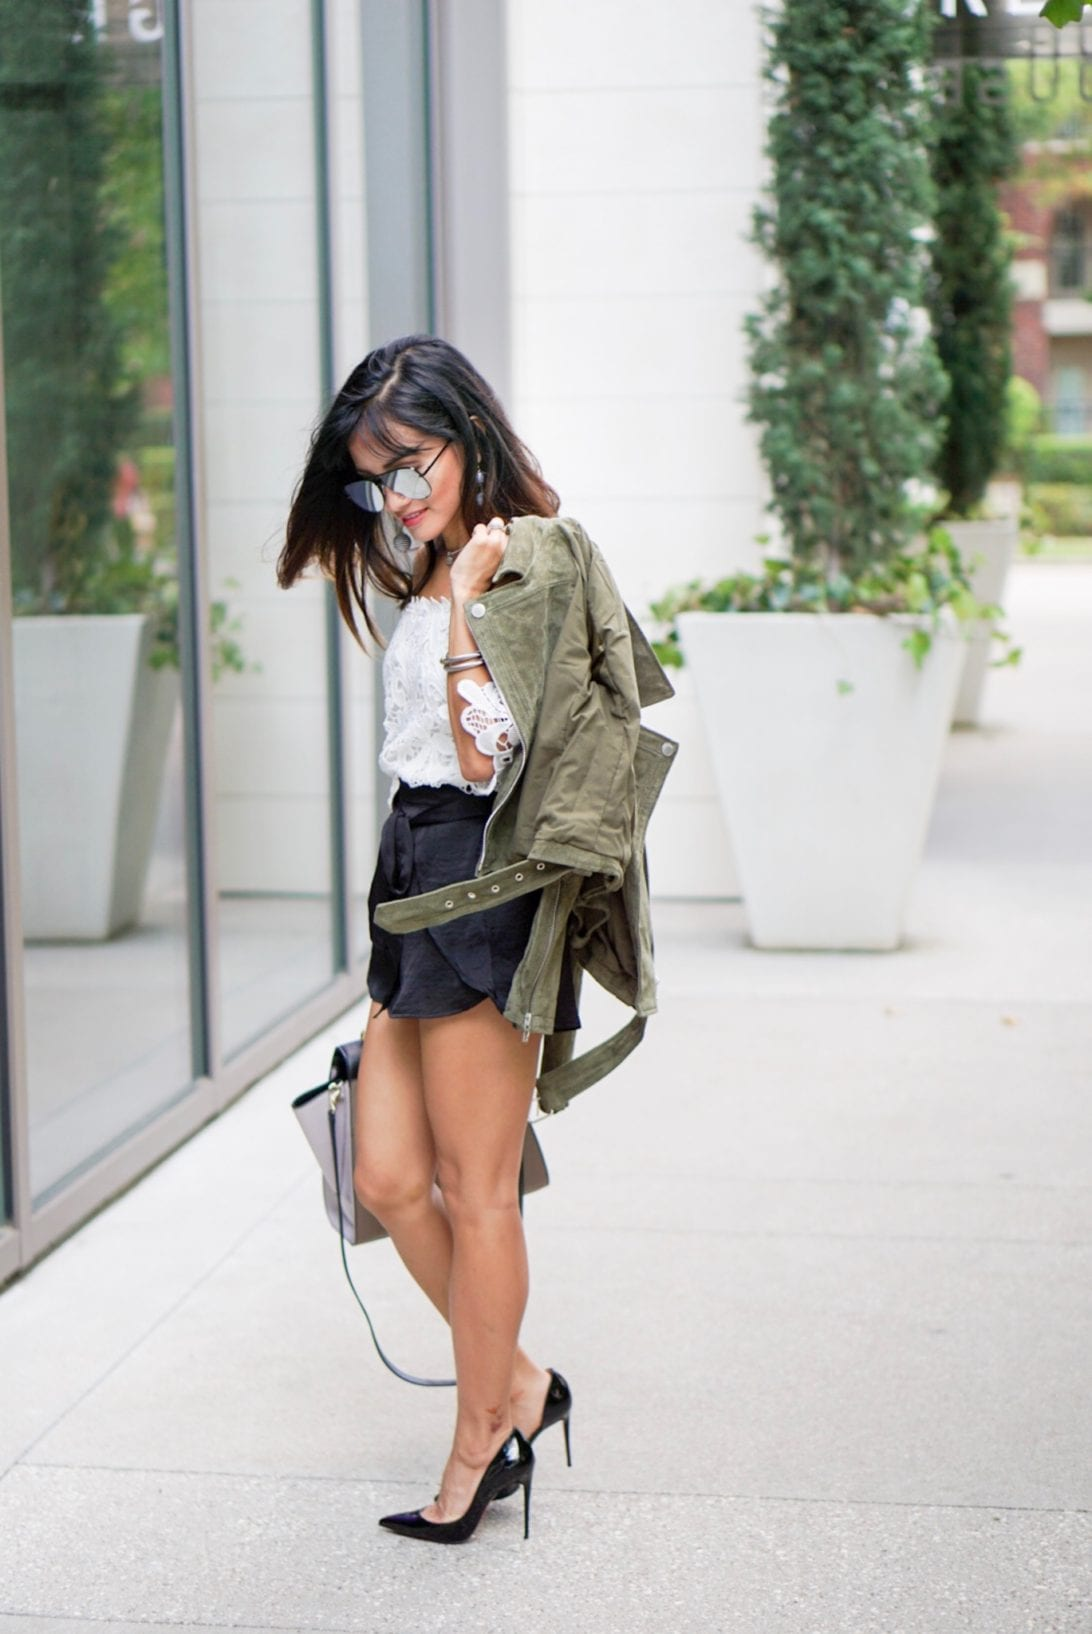 summer style, transitioning winter to summer, summer jacket, blanknyc, suede jacket, moto jacket, ily couture, christian loubouti